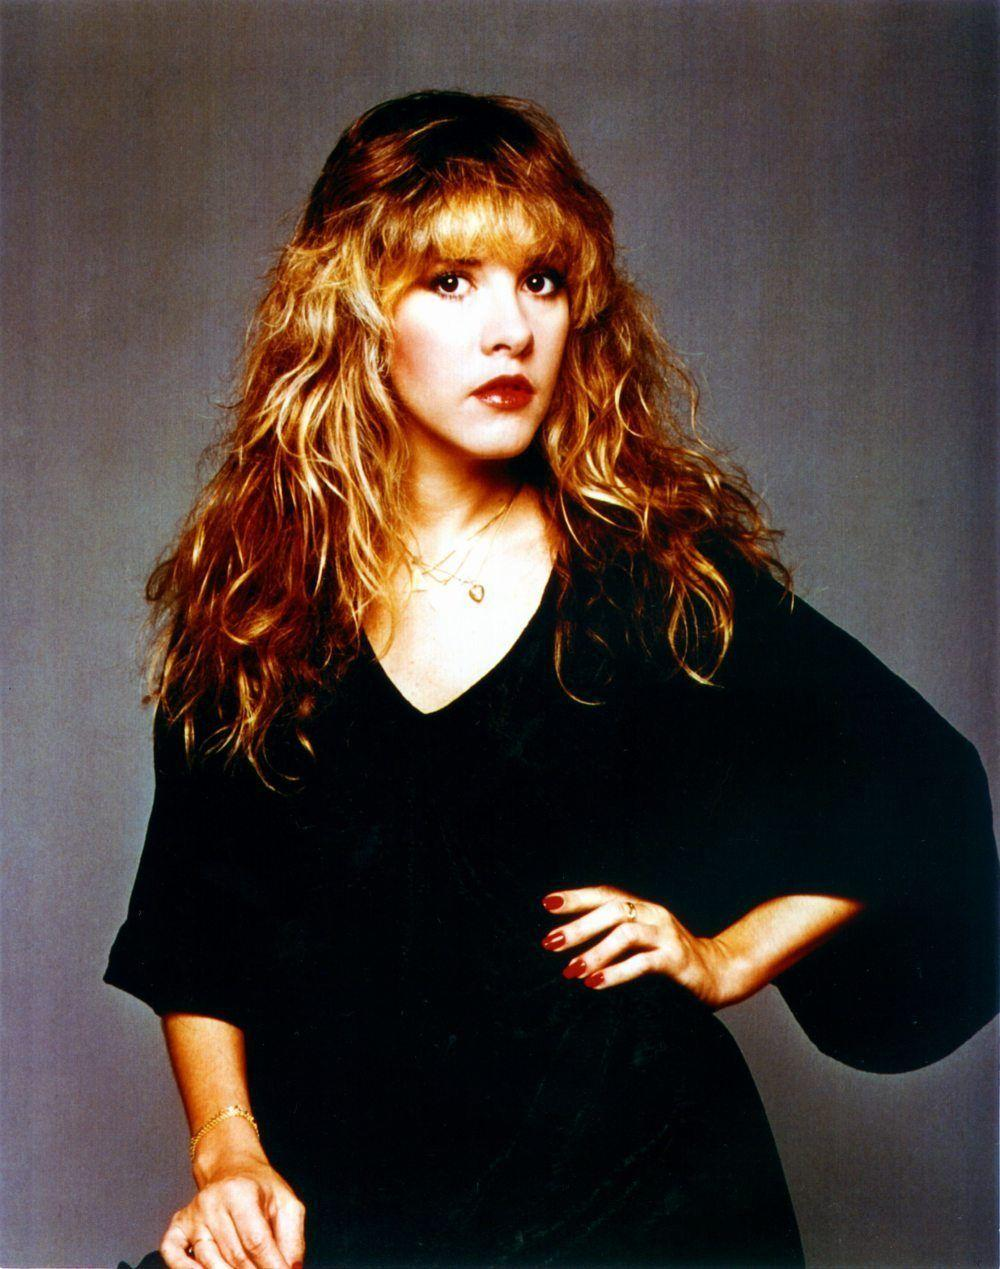 Level 4 Question 5: Stevie Nicks